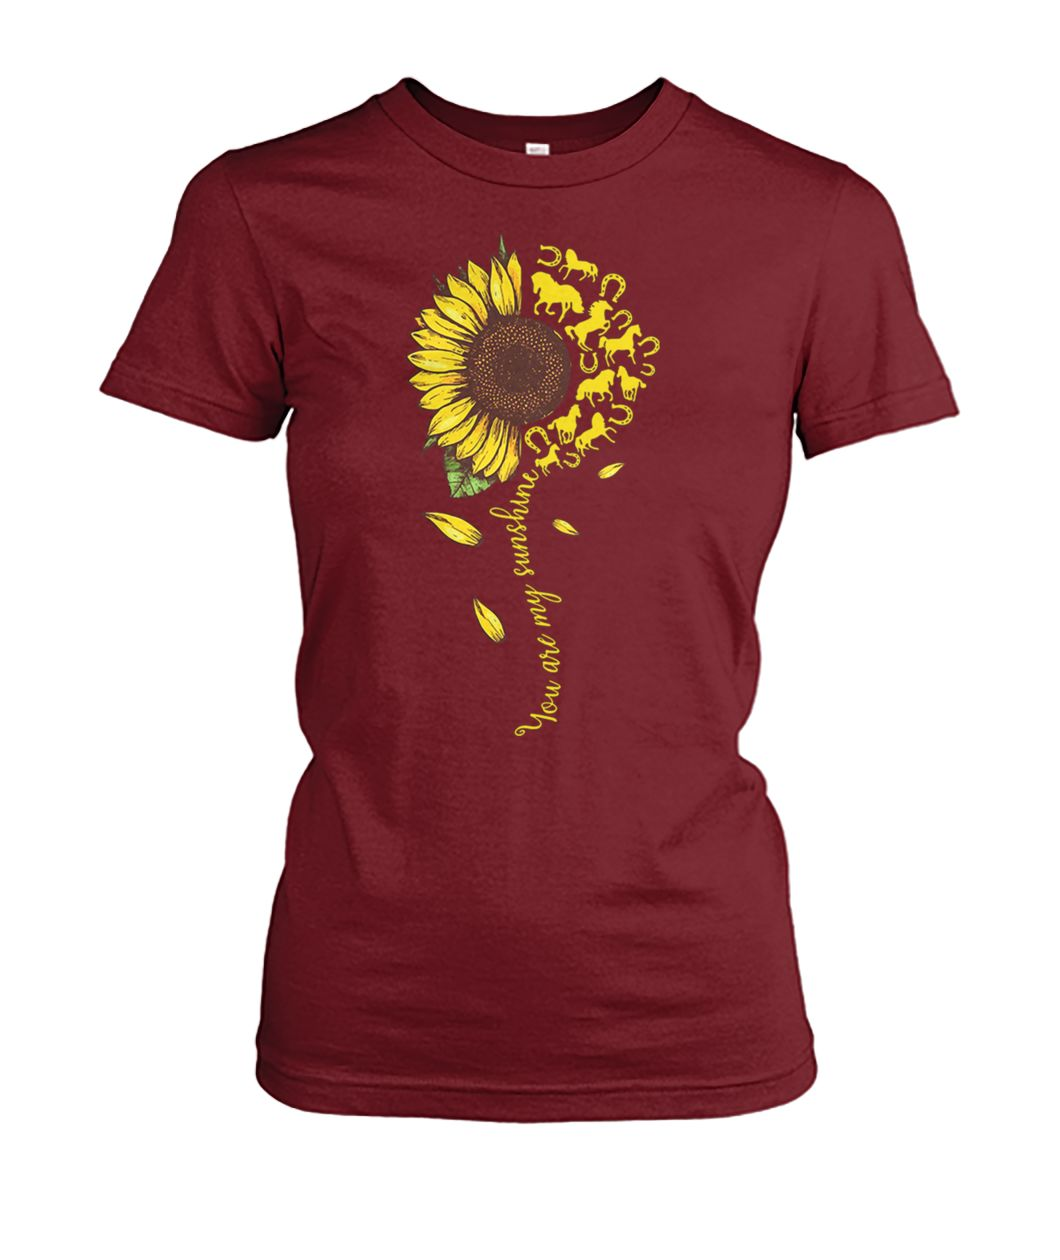 [Hot version] You are my sunshine horse sunflower shirt